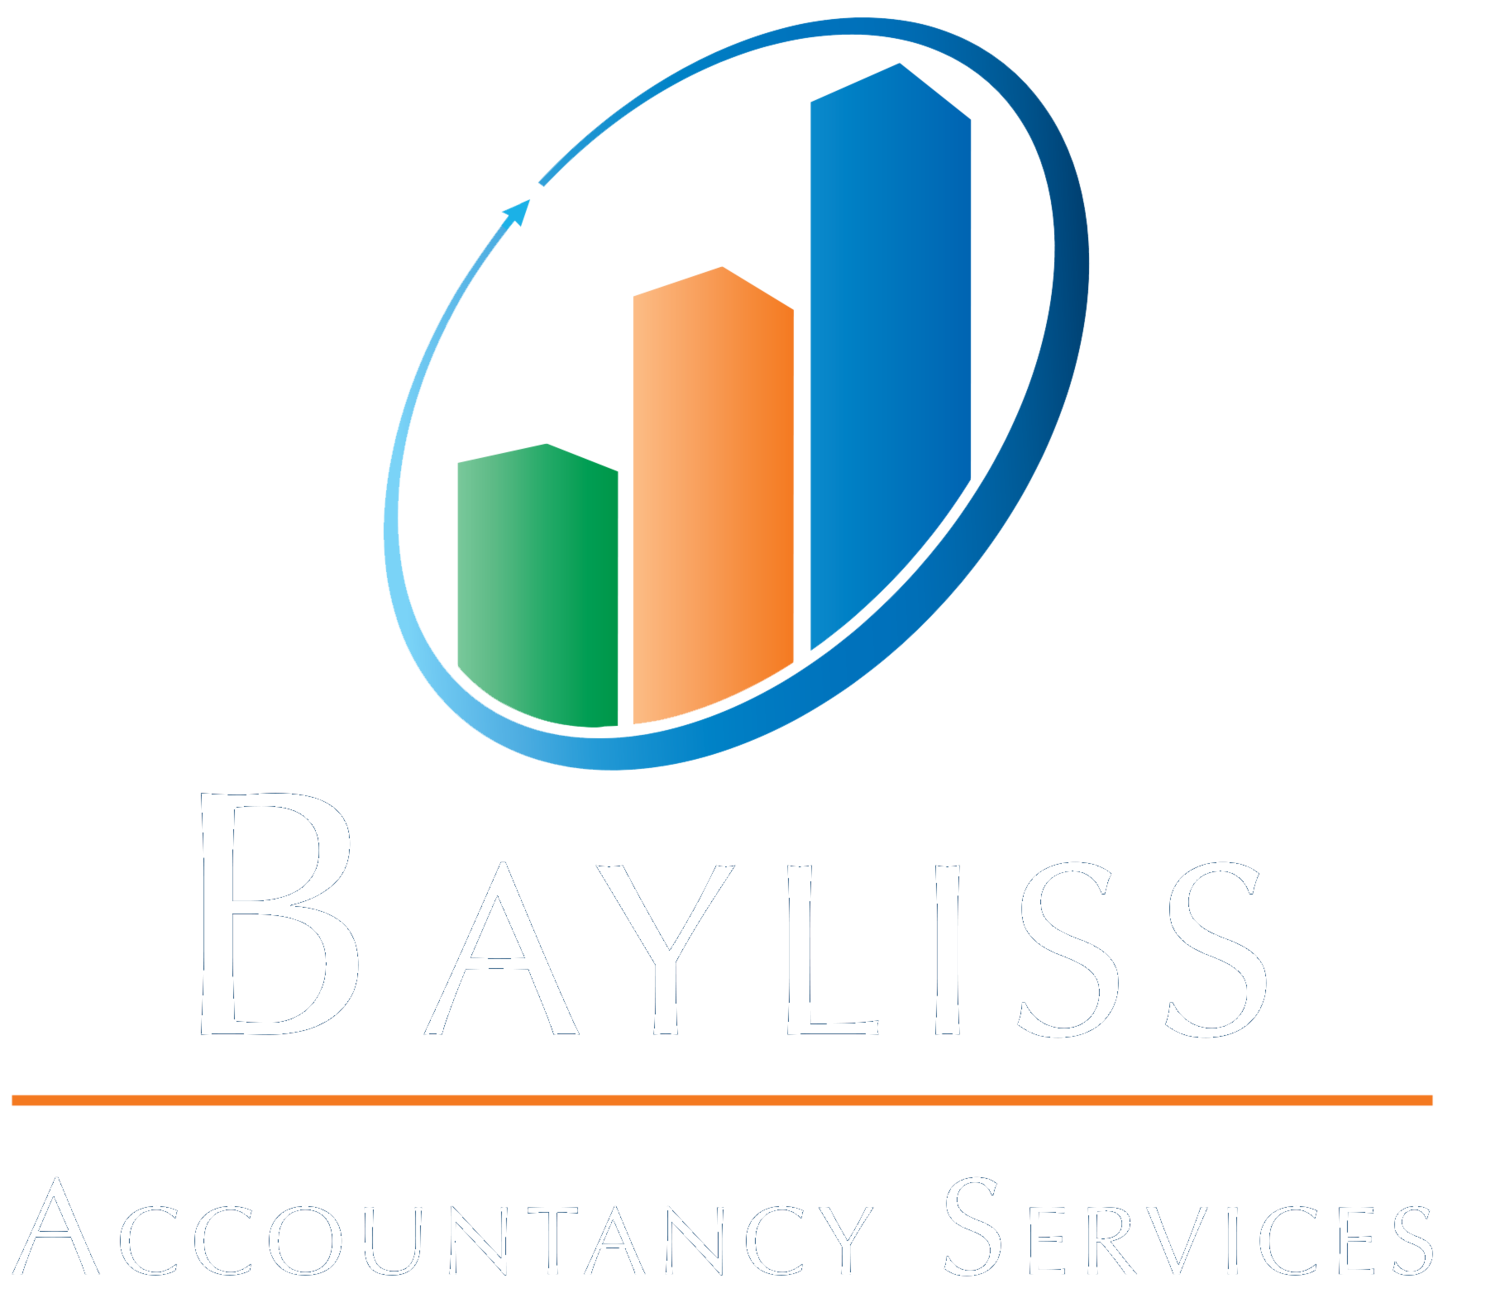 Bayliss Accountancy Services